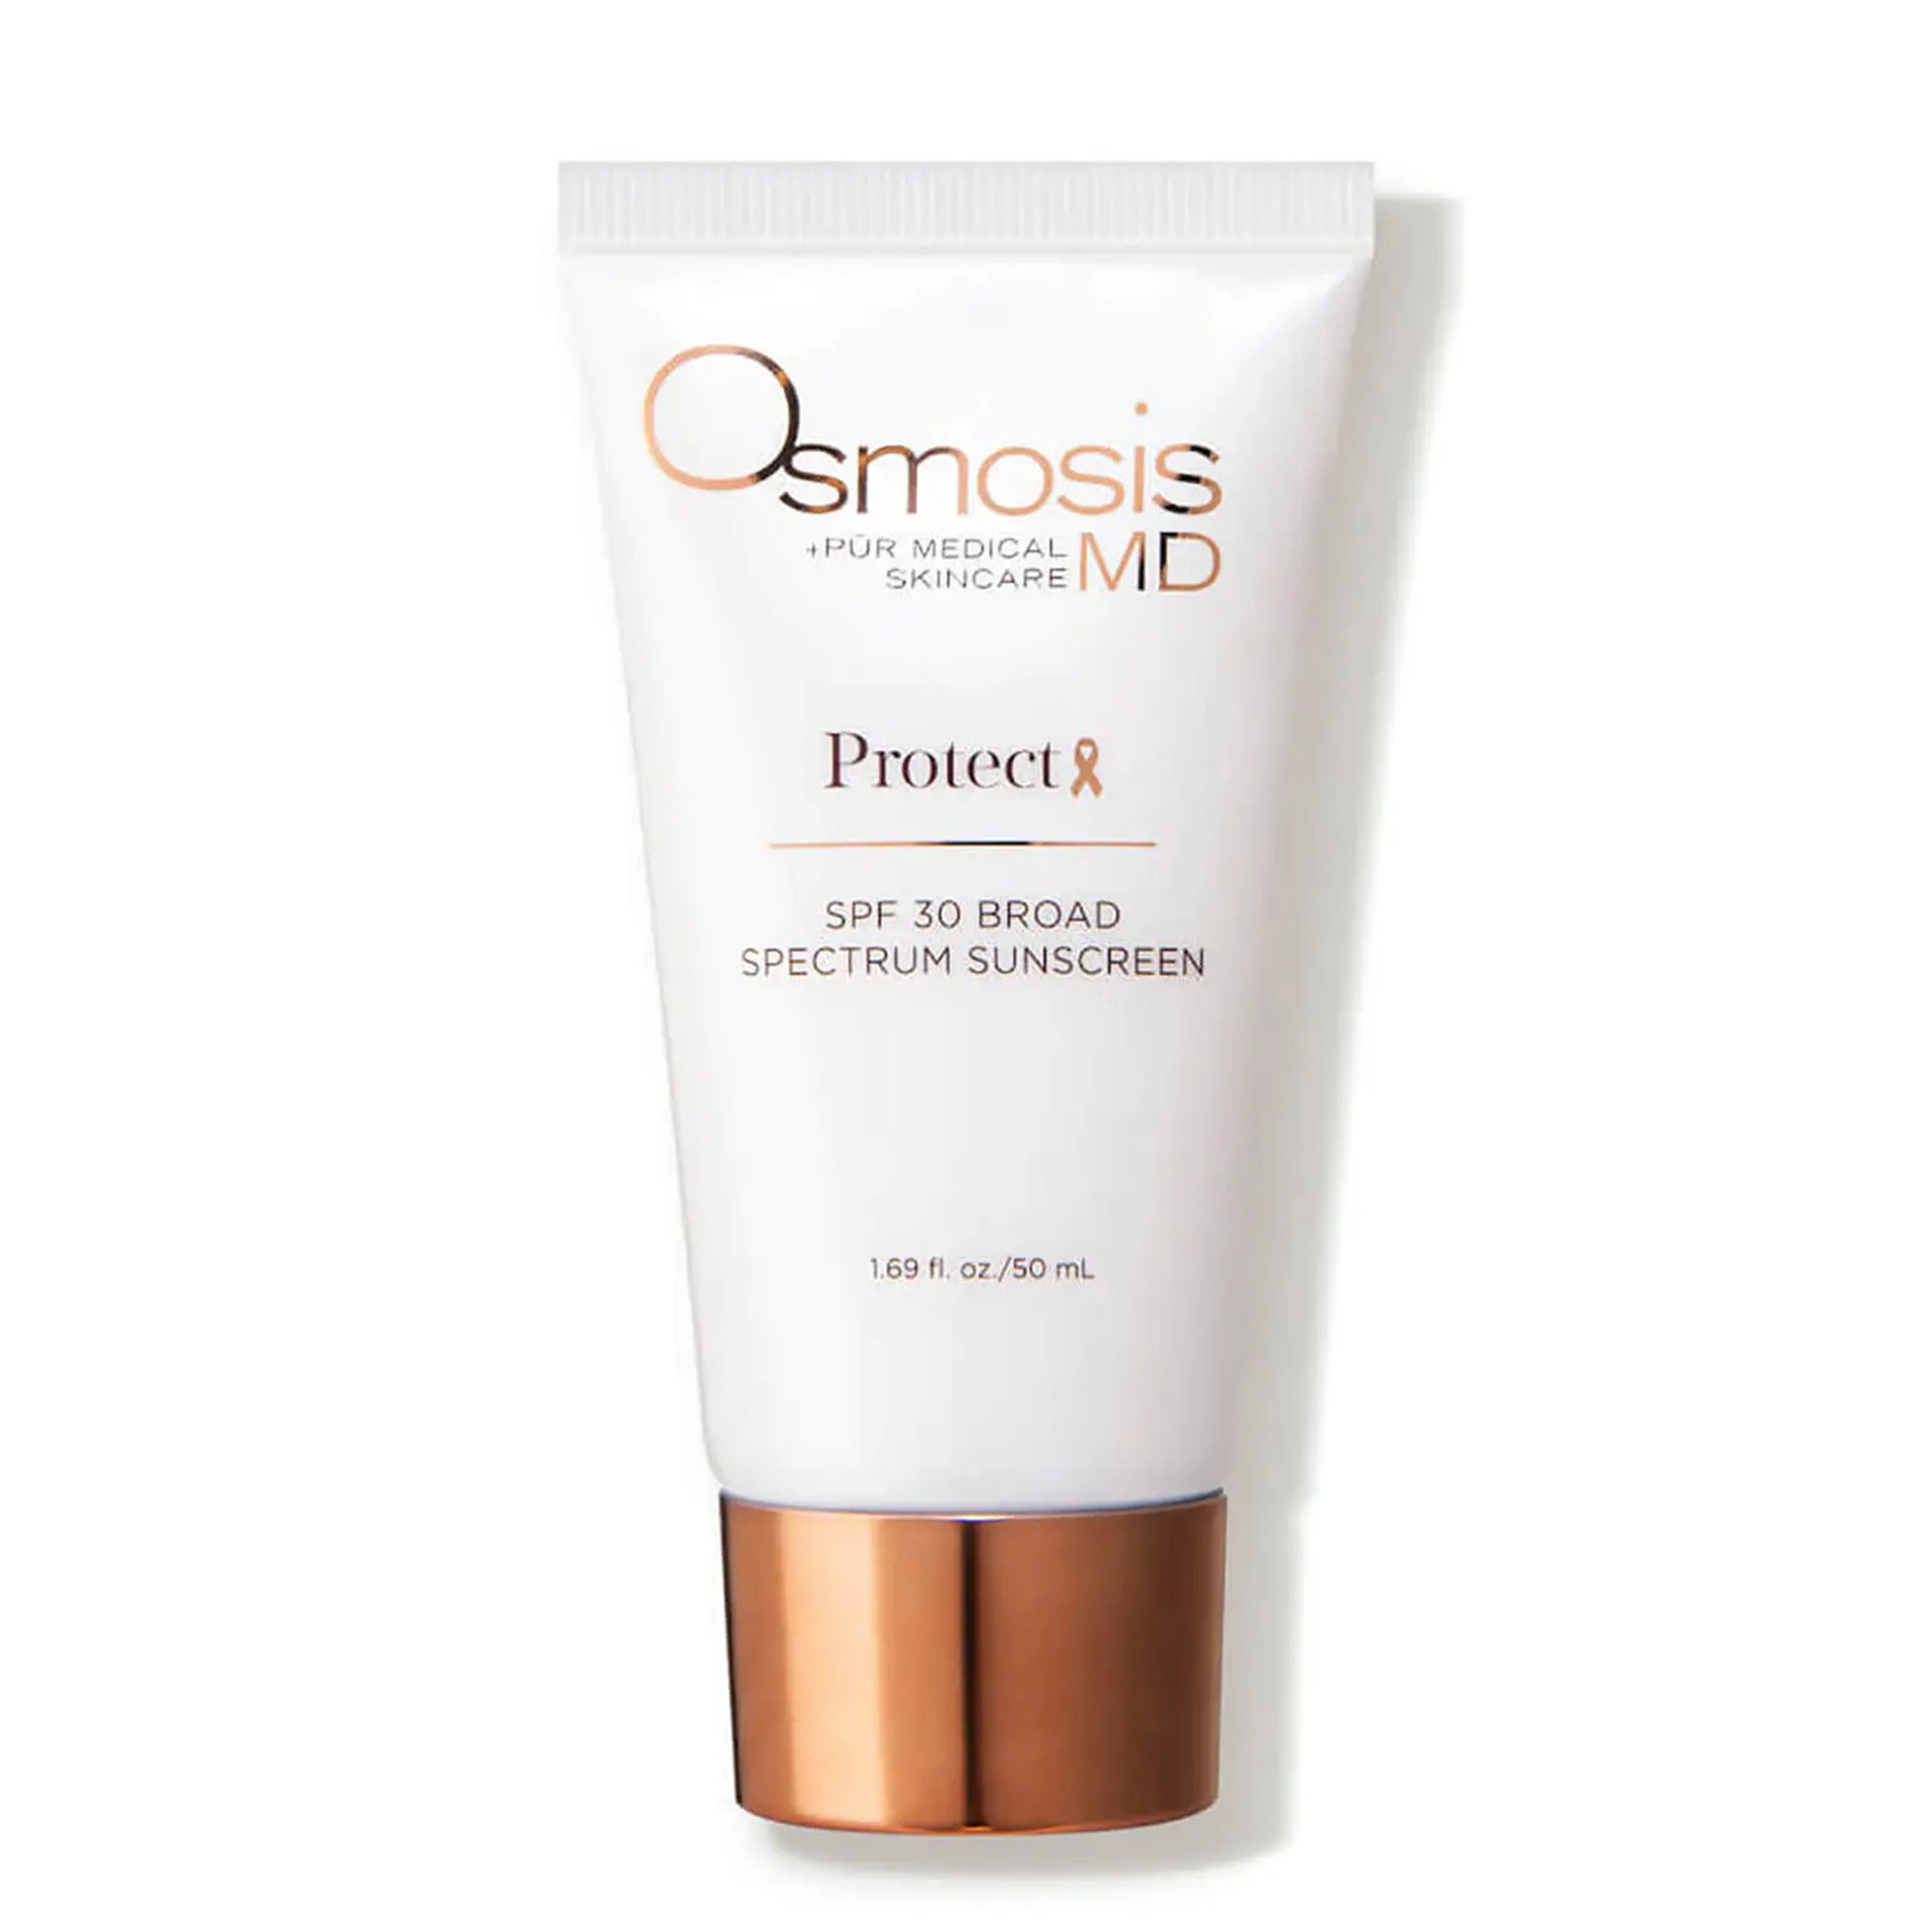 Osmosis +Beauty Protect - SPF 30 Broad Spectrum Sunscreen